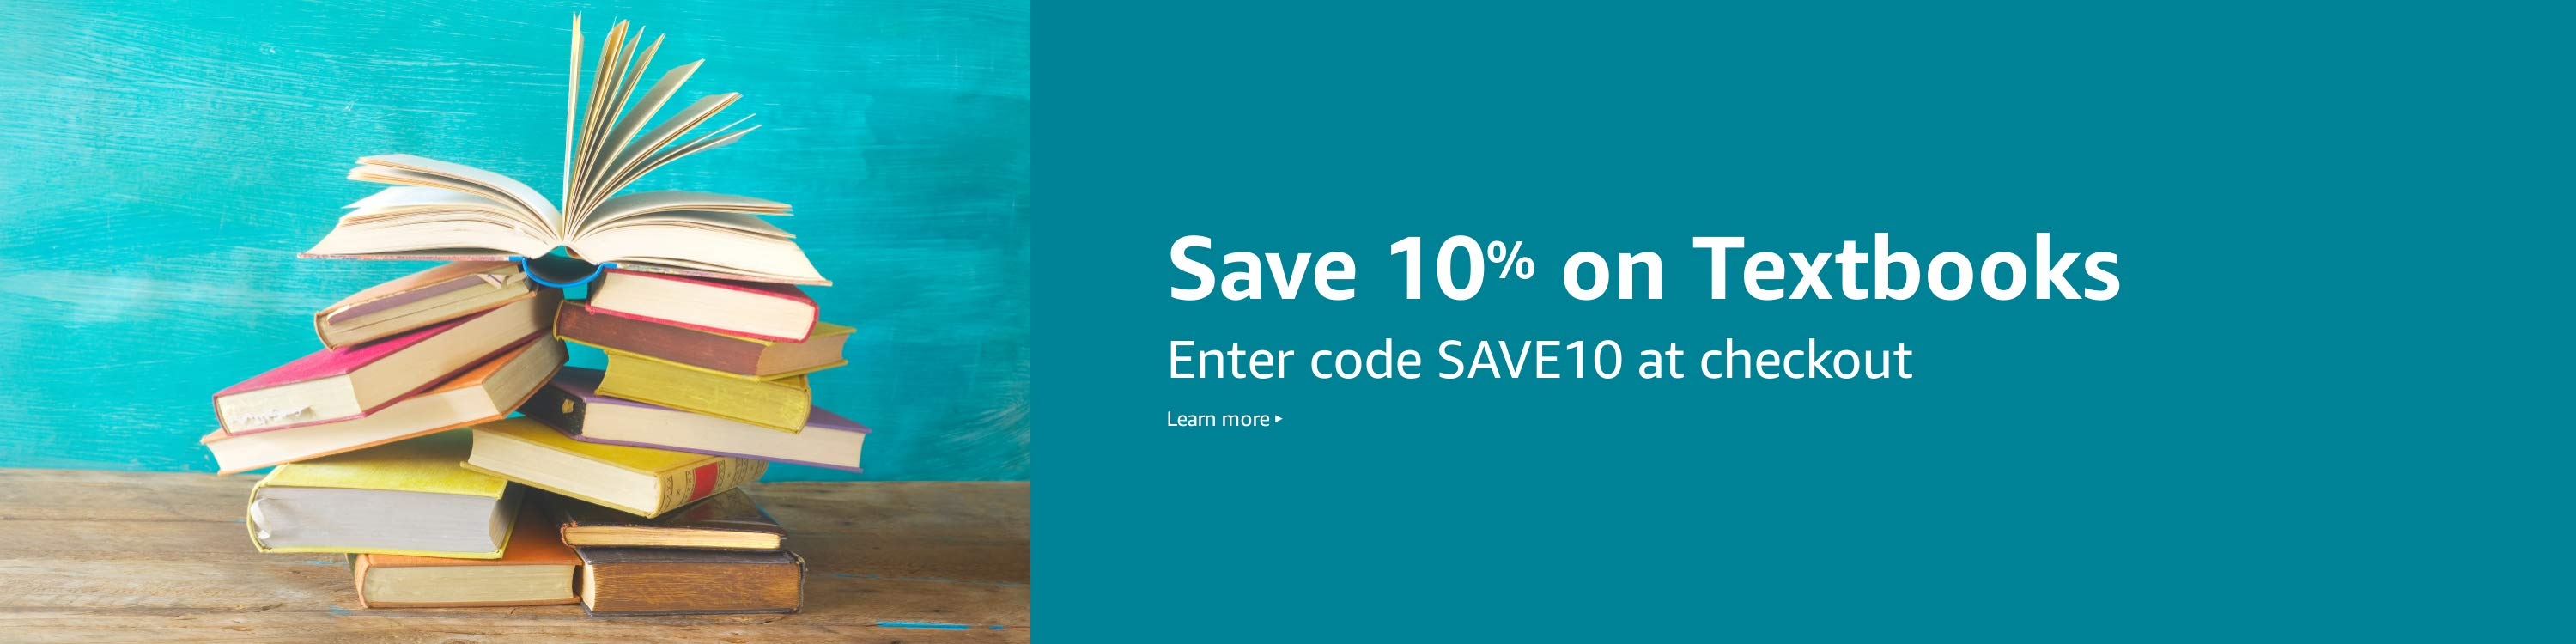 Save 10% on textbooks with SAVE10